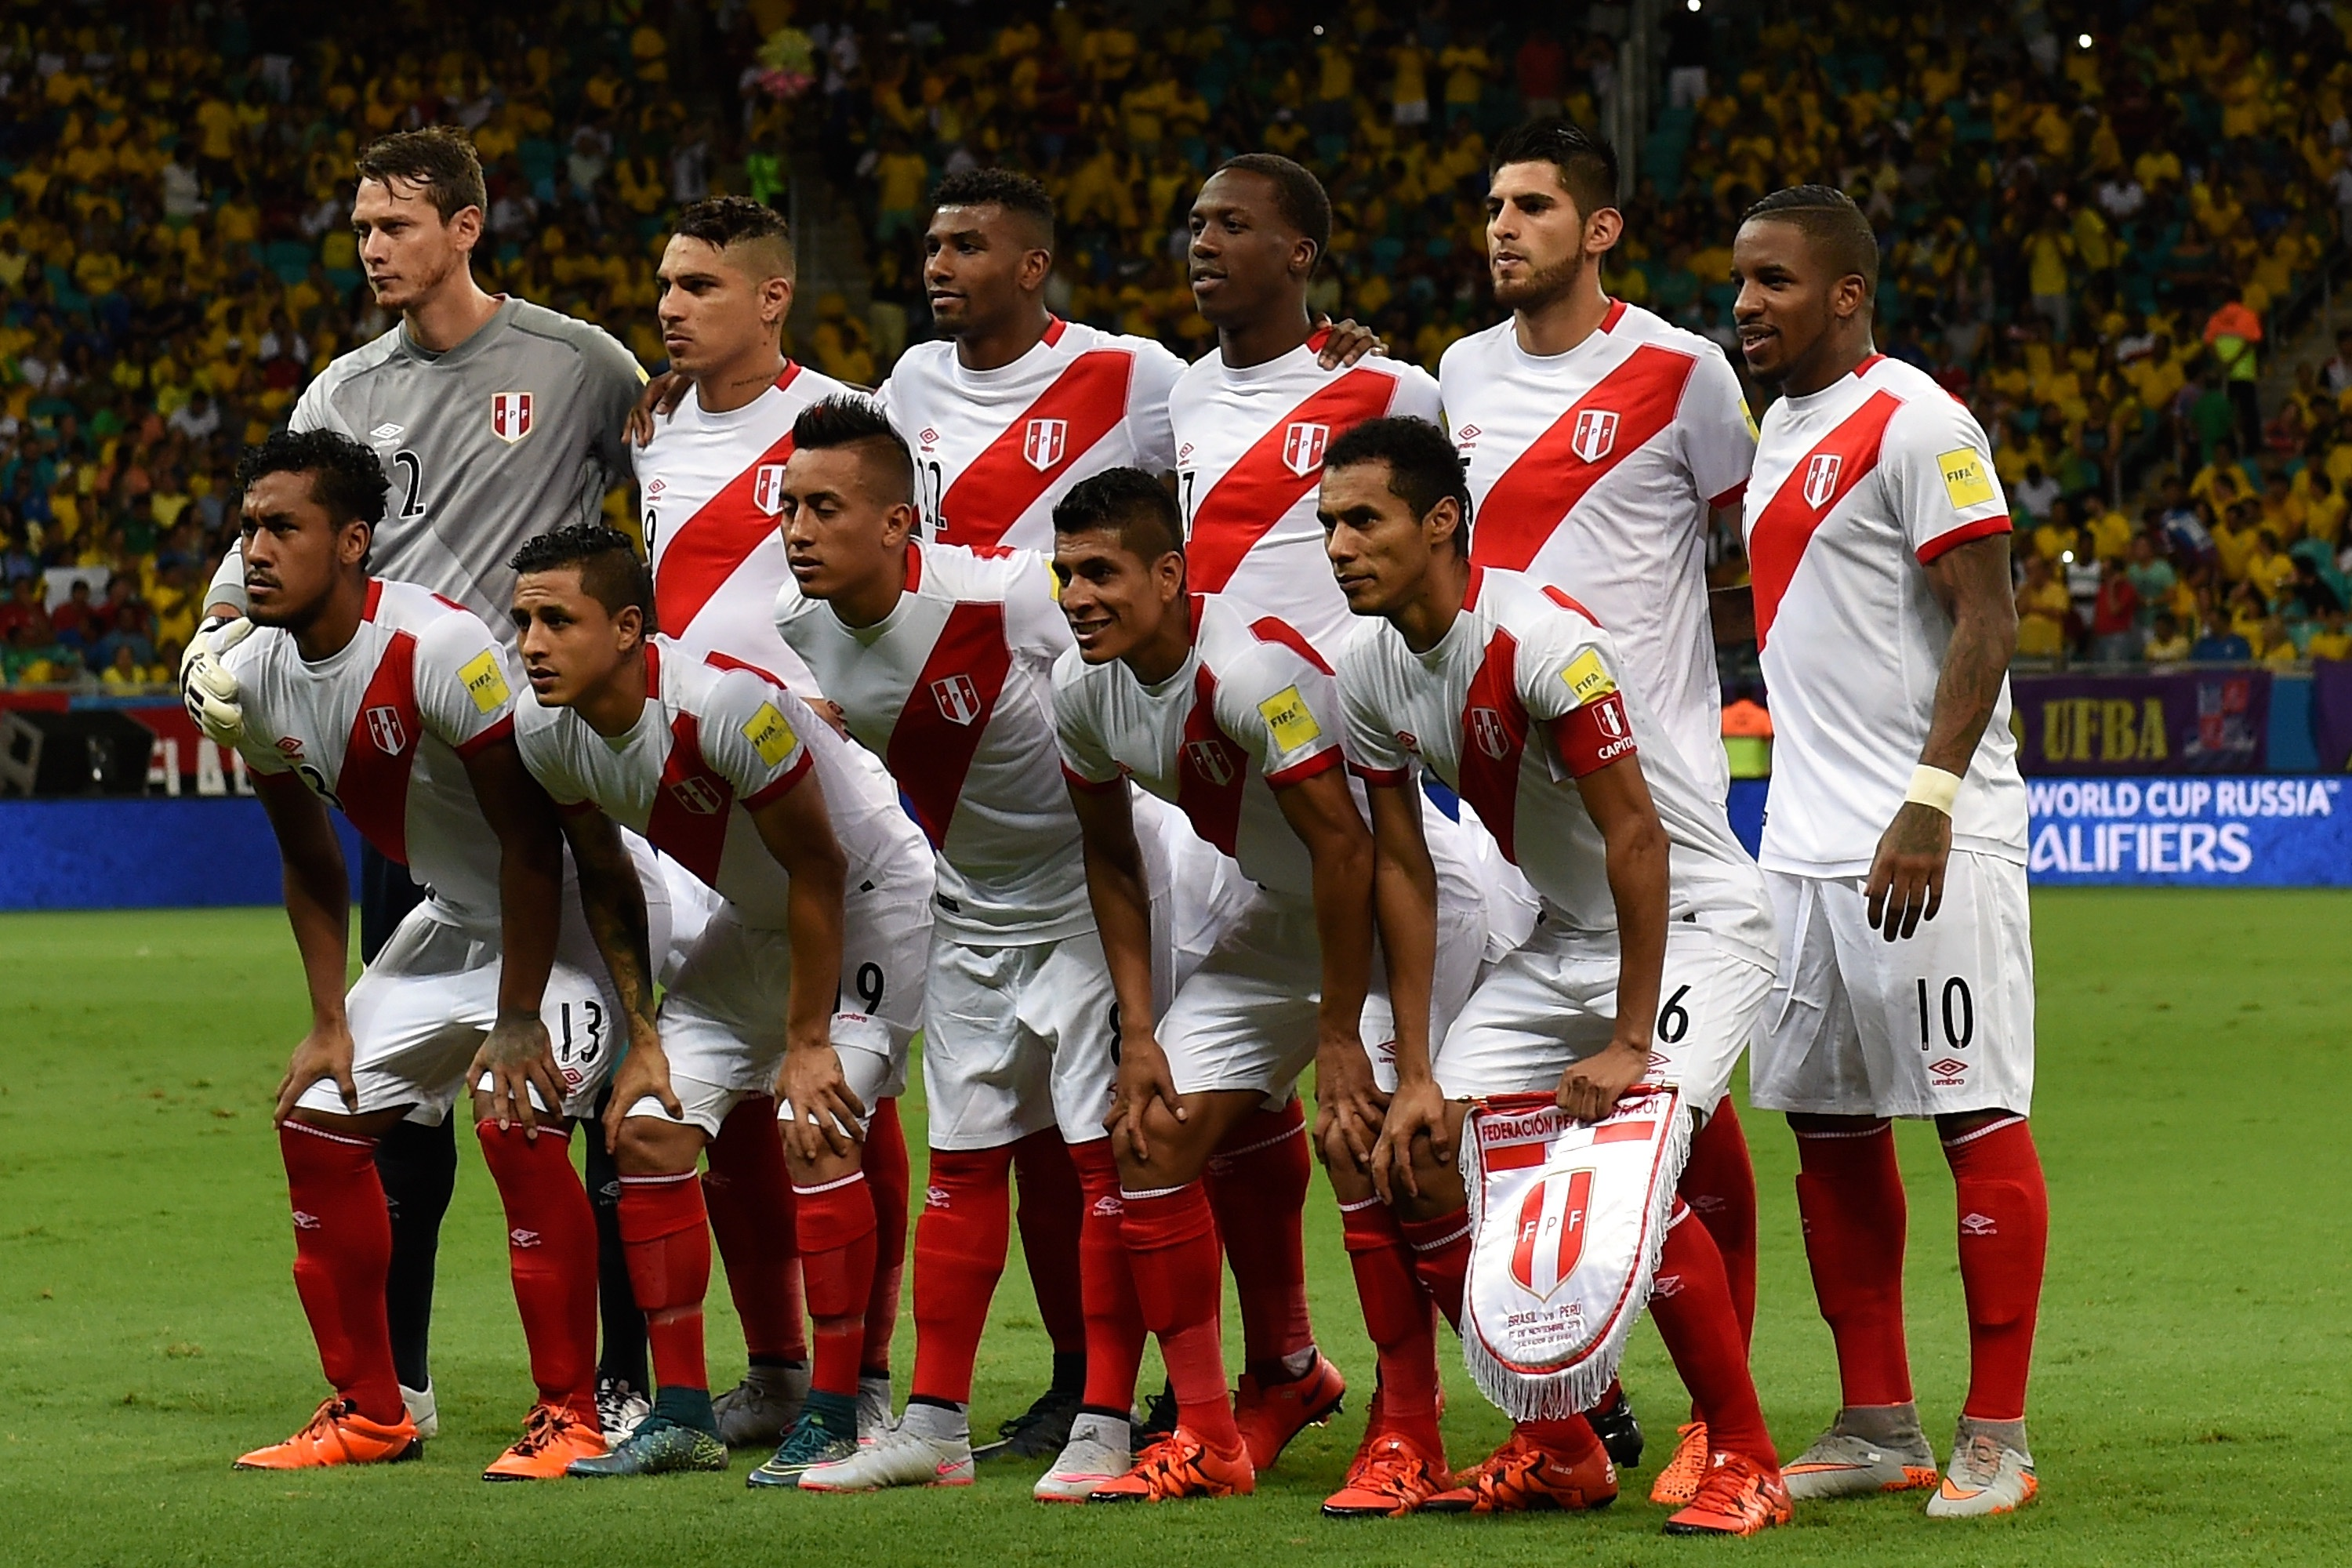 ef47c42a46b Peru's players pose for a photo before a match between Brazil and Peru as  part of 2018 FIFA World Cup Russia Qualifiers. Photo by Buda Mendes/Getty  Images